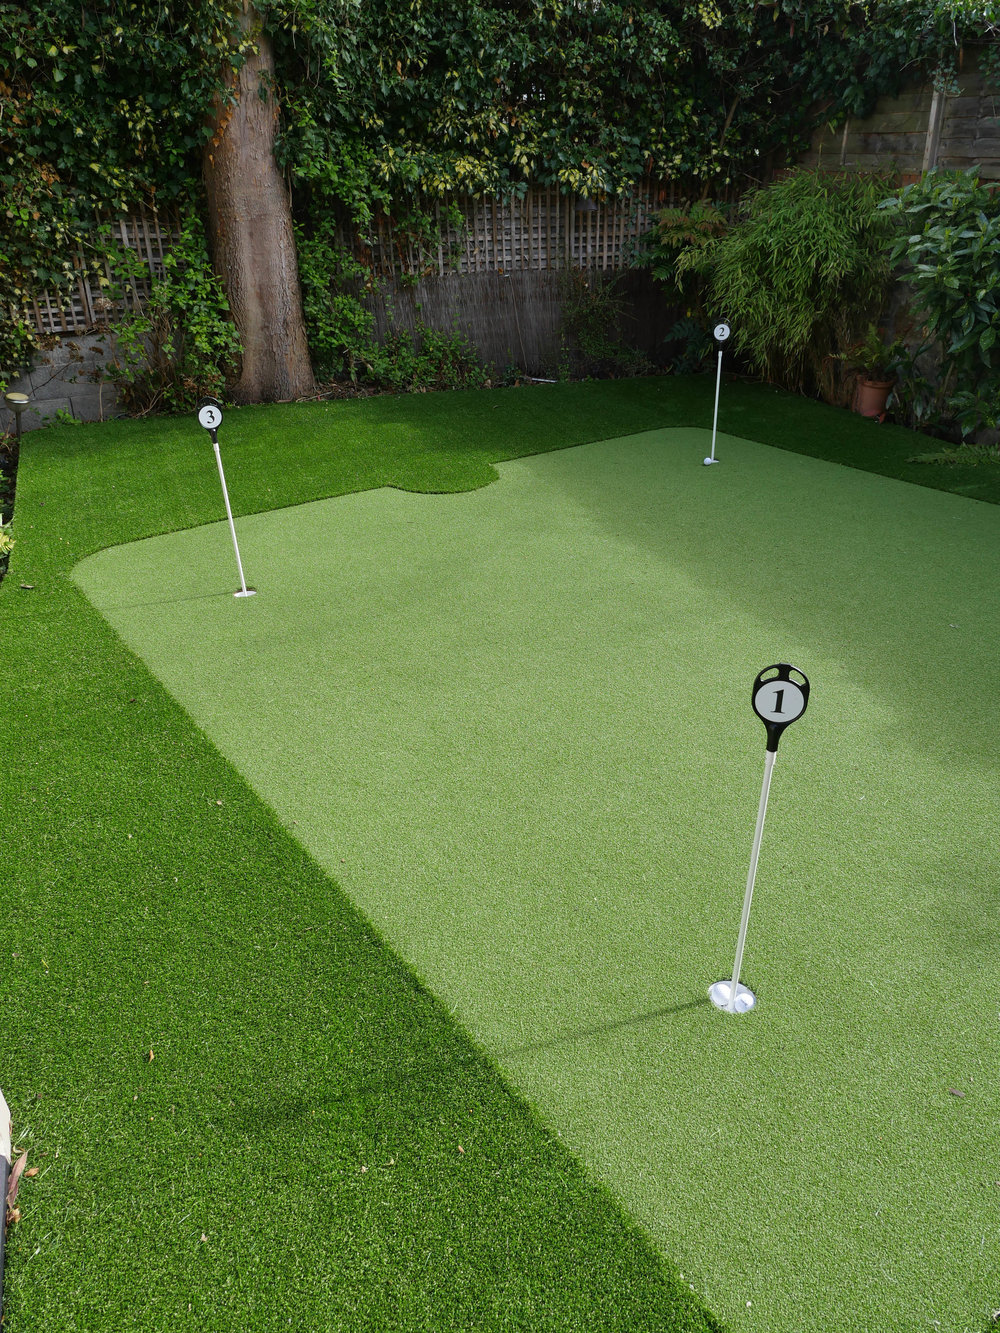 Amazon Golf Greens - Professional Putting Greens